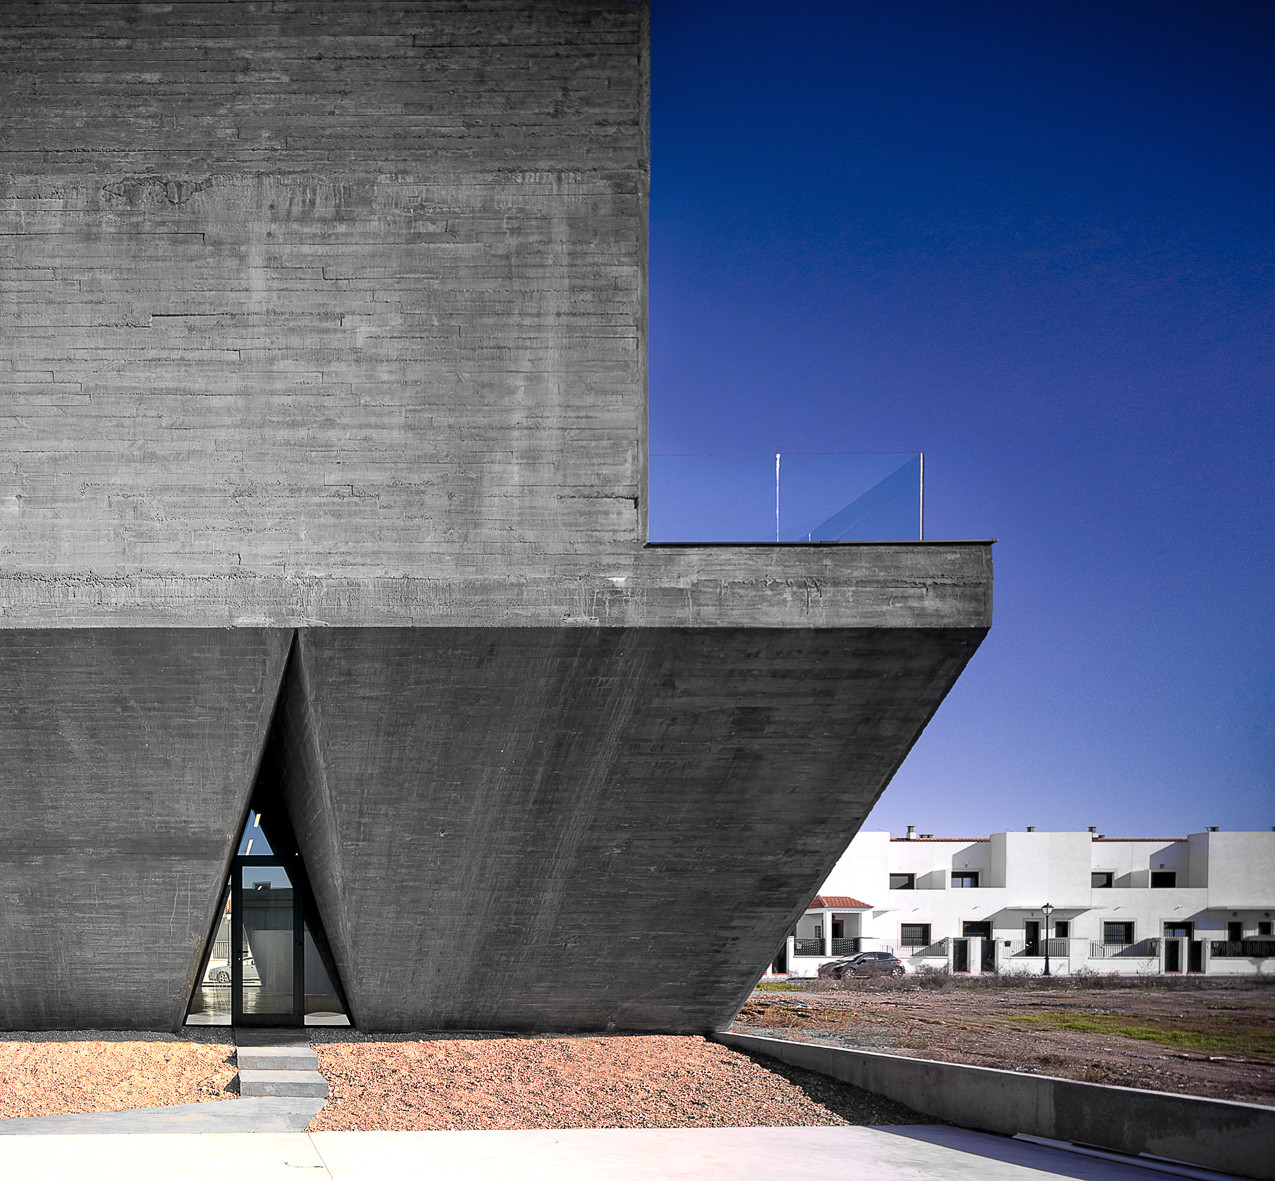 Integral Territorial Center of the Commonwealth of Olivenza / Daniel Jiménez + Jaime Olivera